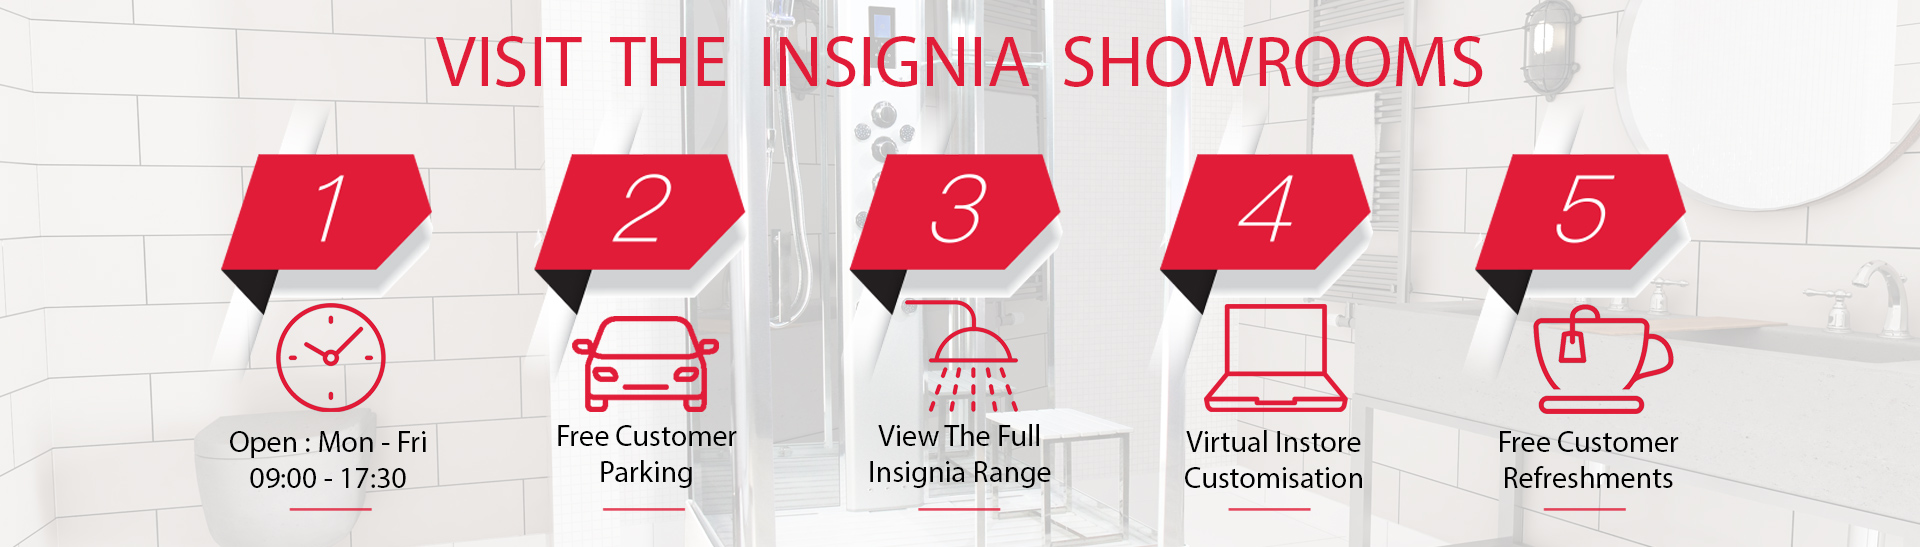 Insignia Showroom